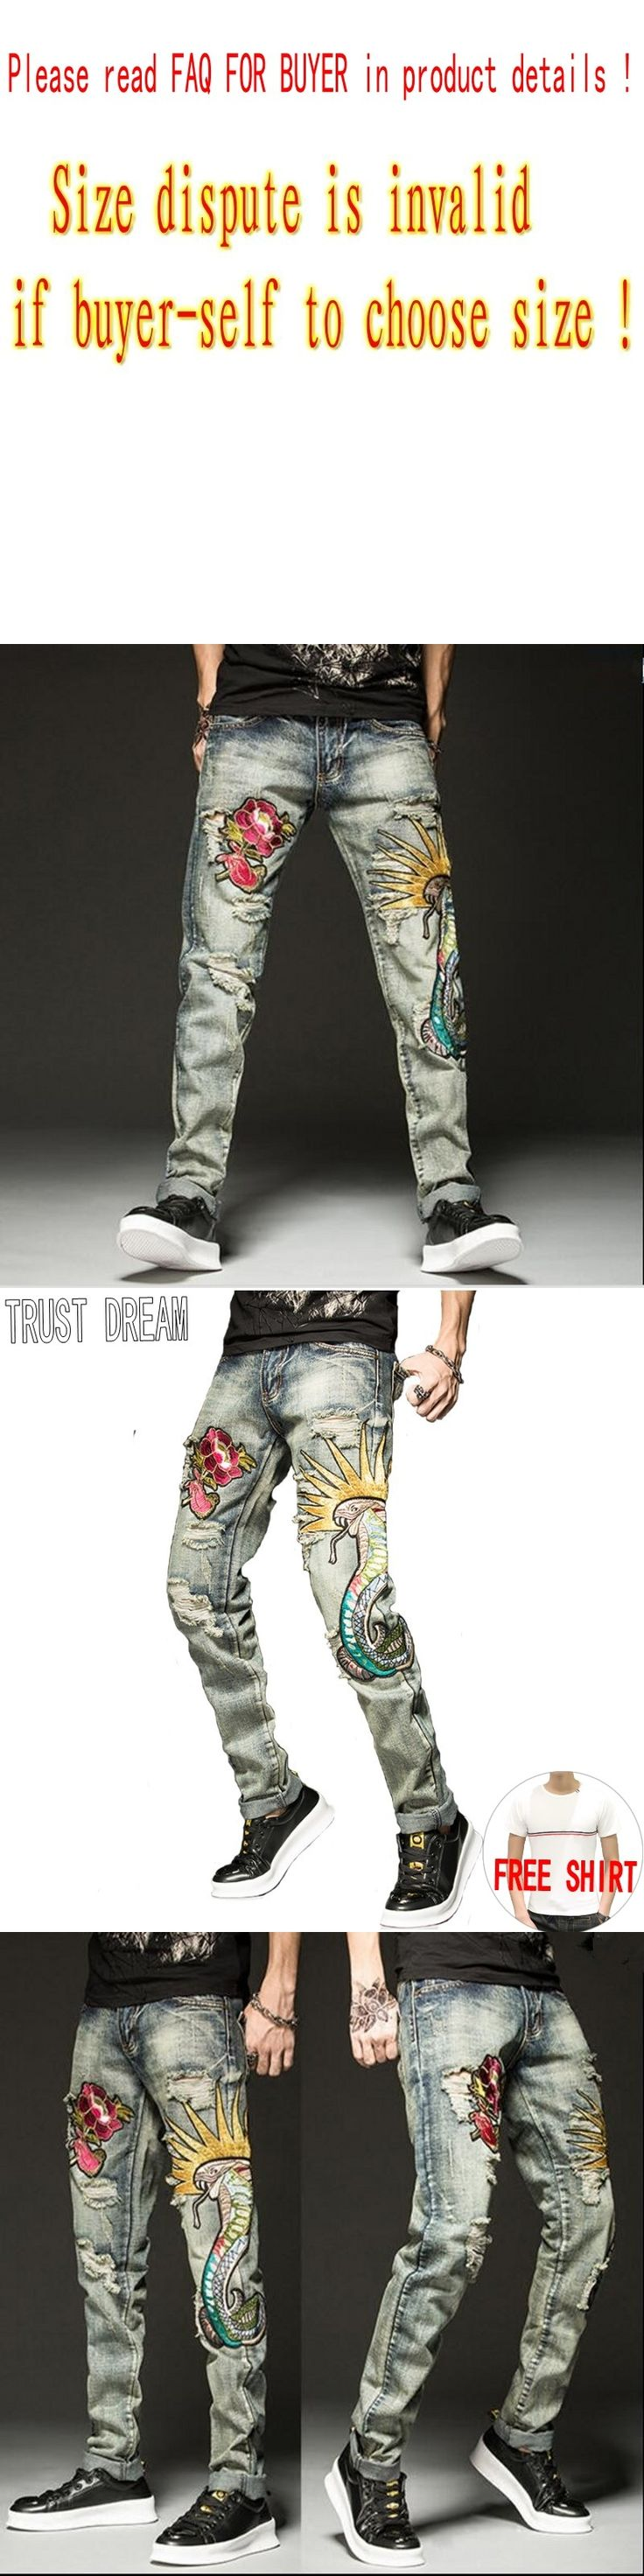 TRUST DREAM Europeans Style Men hEmbroidery Rose Snake Slim Jean Casual Distressed Ripped Hole Man Persoanal Quality Jeans